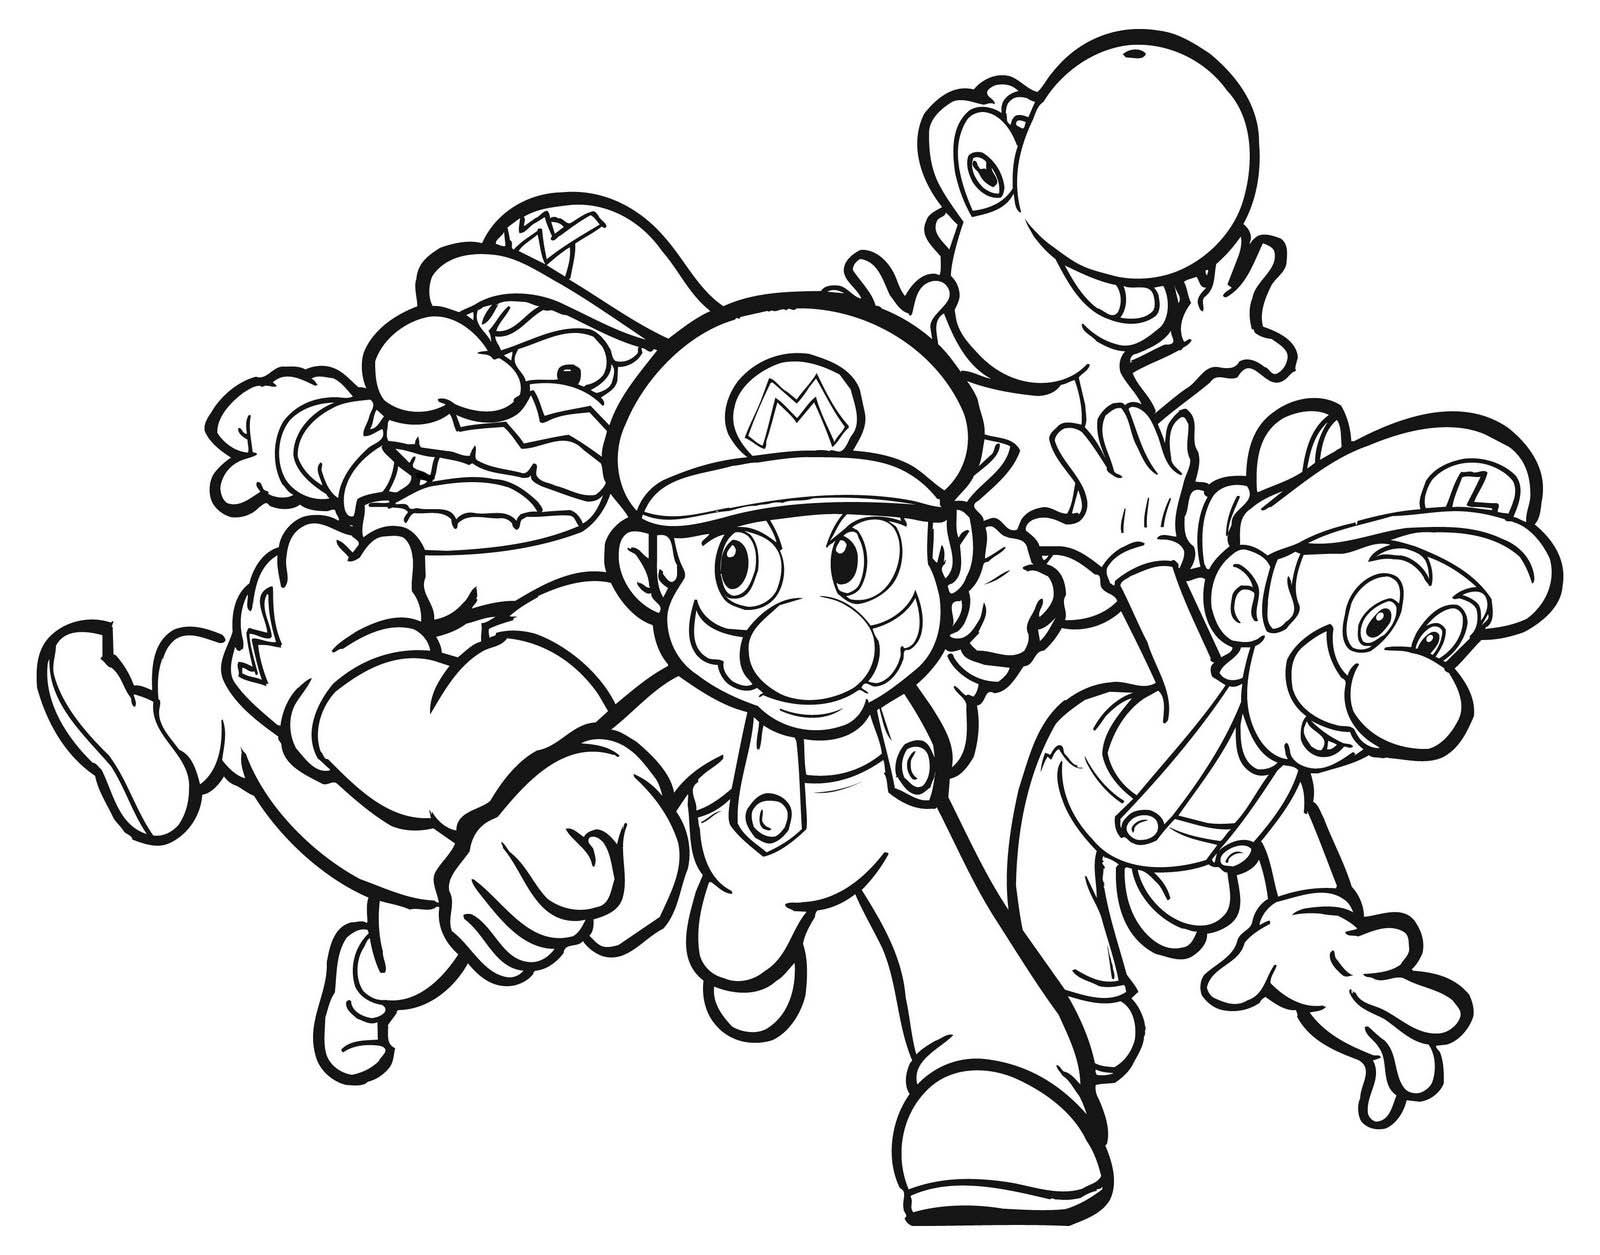 Coloring pages for kids mario bros - Free Printable Coloring Pages Of Mario And Luigi Free Printable Coloring Pages Of Mario Characters Free Printable Coloring Pages Of Mario Brothers